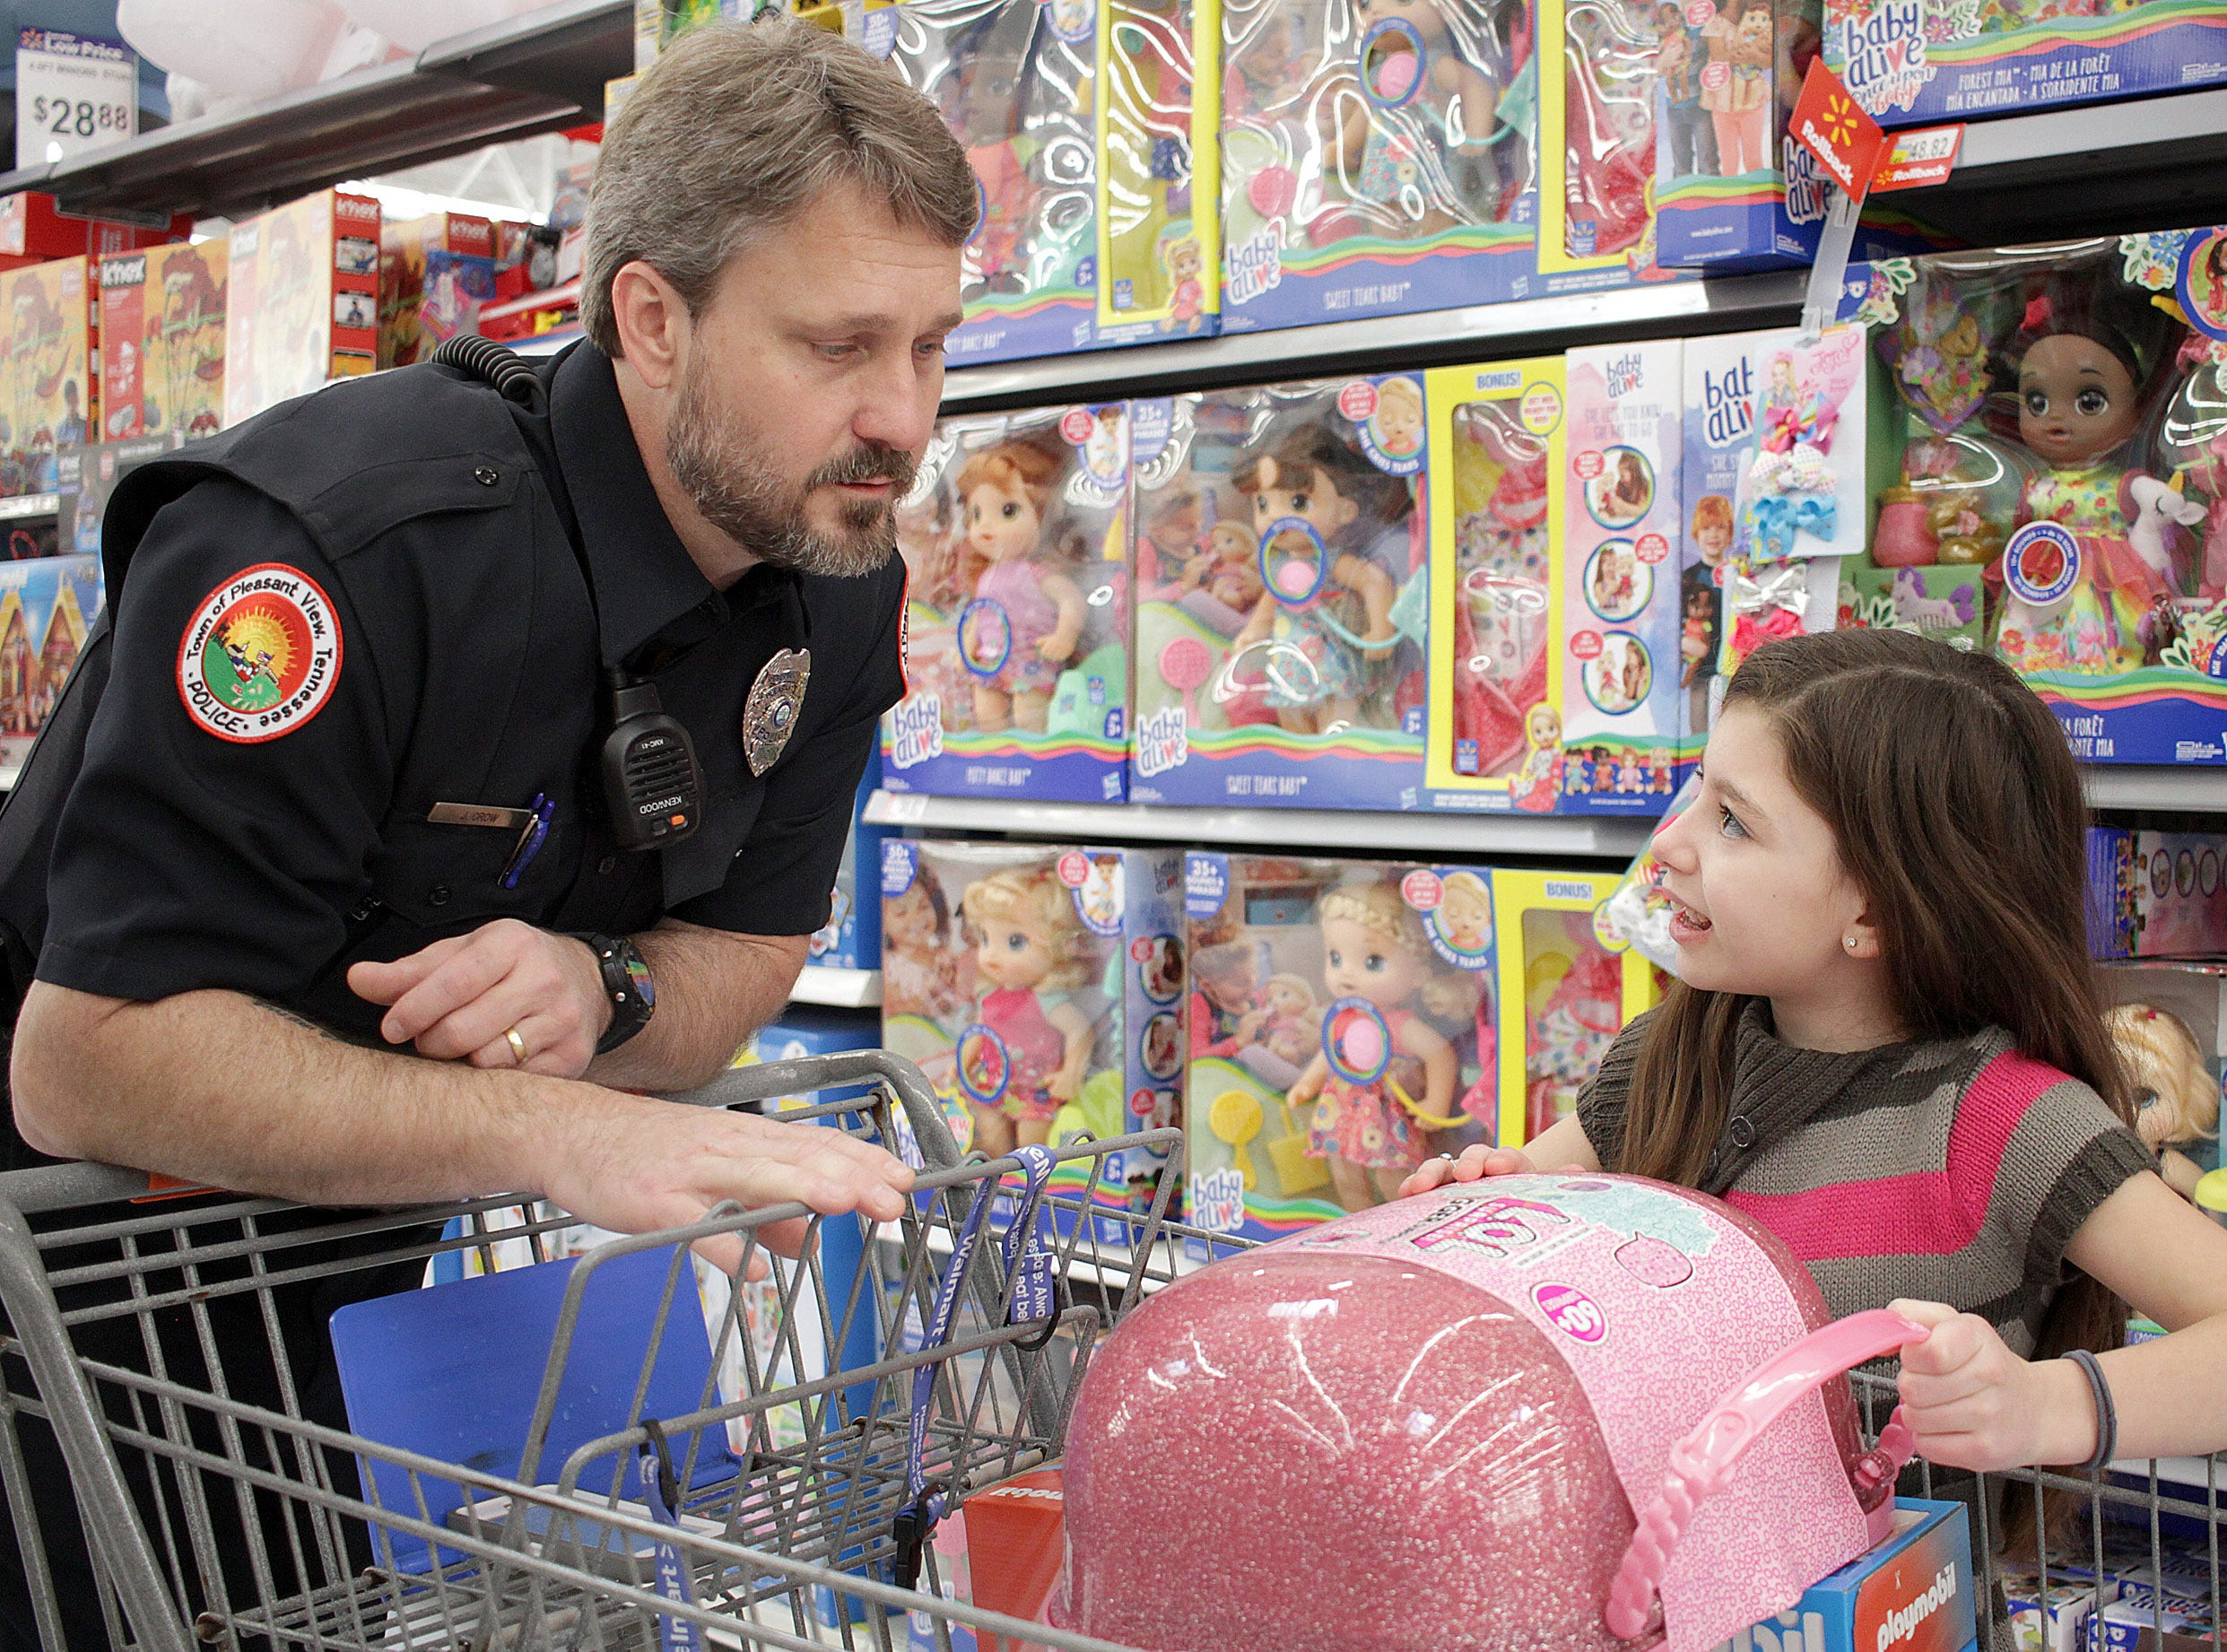 Officer Jeff Crow and Jazmyne McCoy discuss purchase options during Shop with a Cop in Ashland City on Saturday, December 15, 2018.